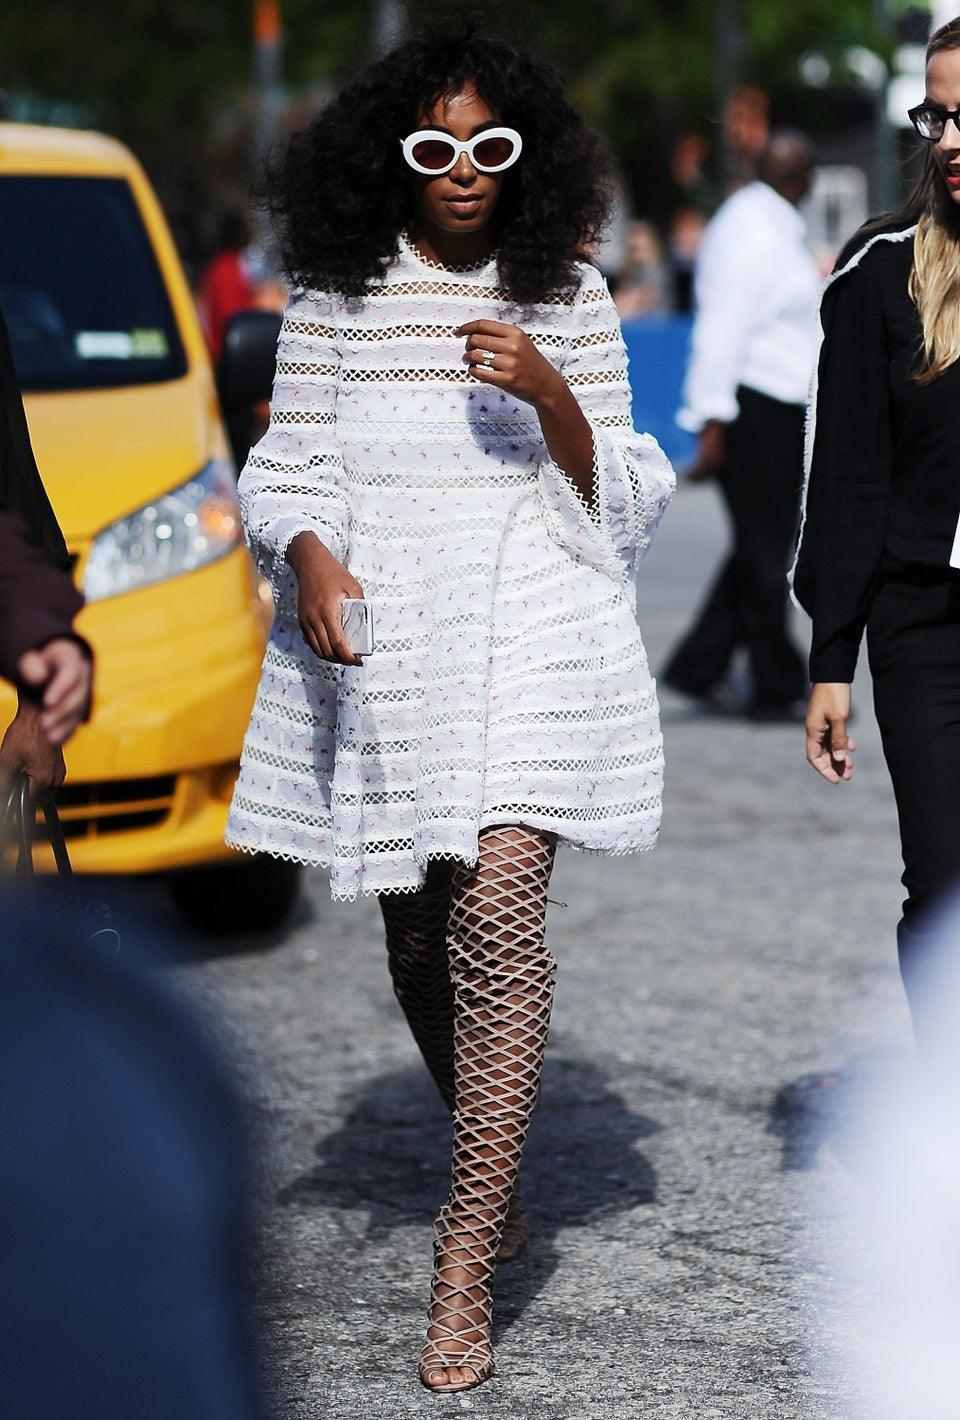 White Hot: Our Faves Show Us How To Rock White For Summer